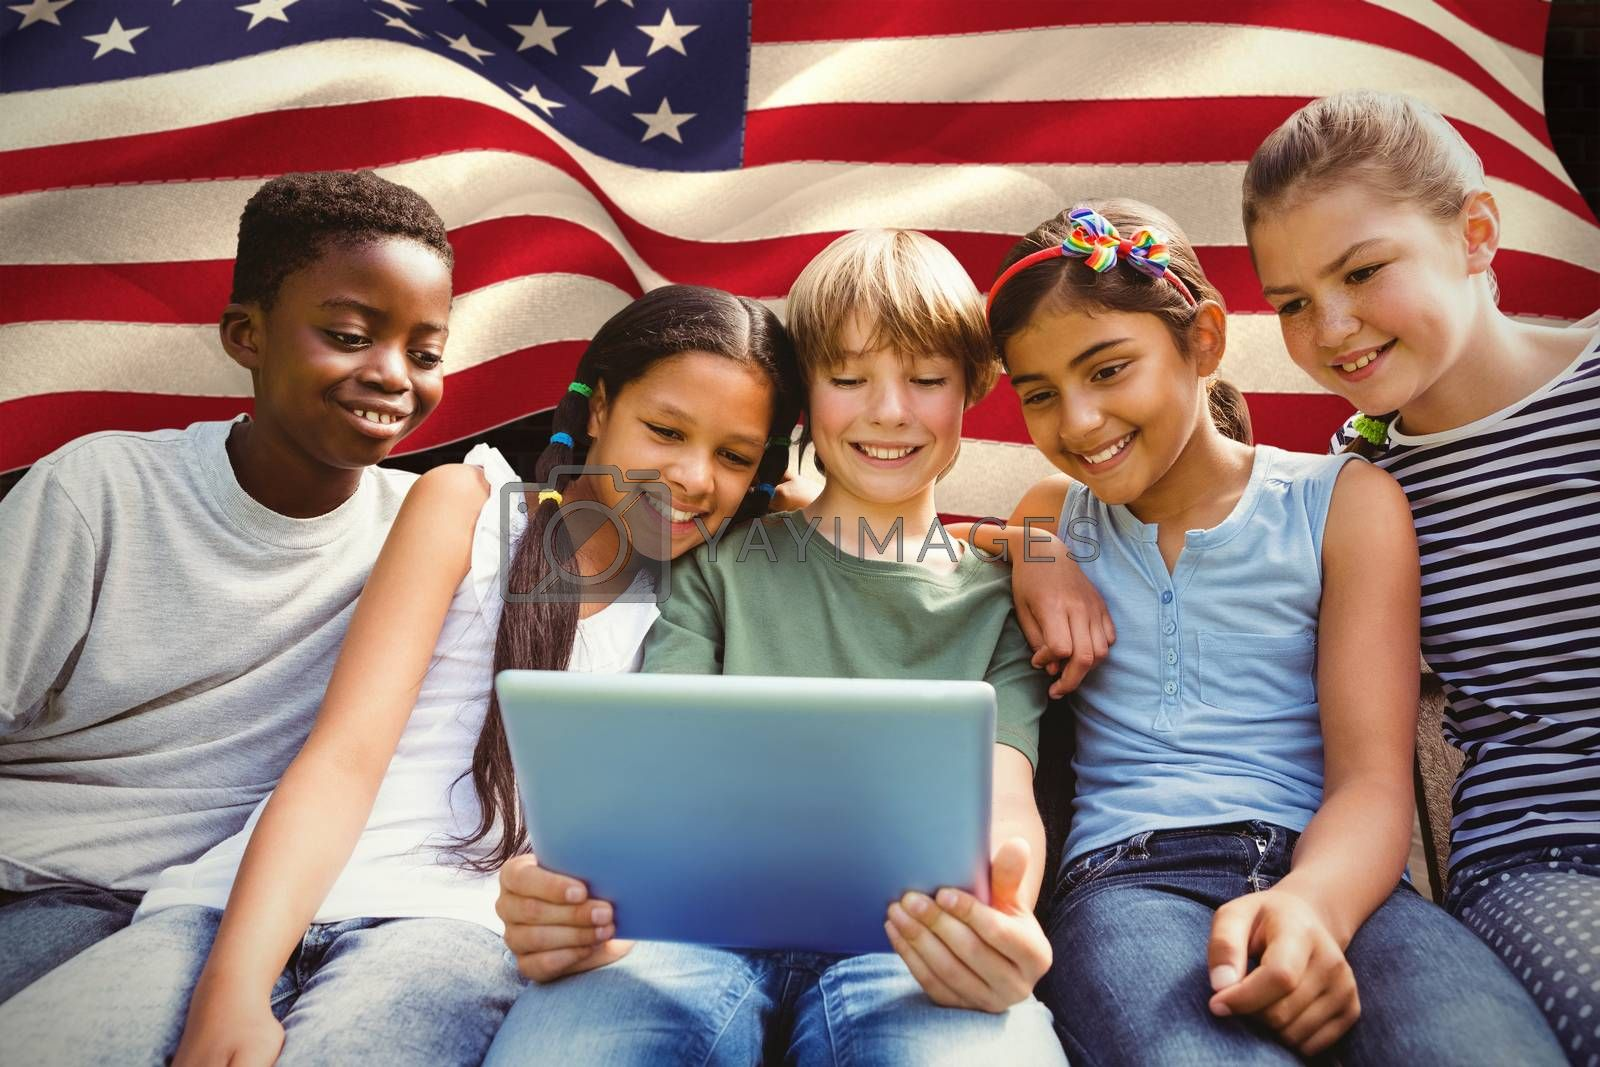 Happy children using digital tablet at park against composite image of digitally generated united states national flag